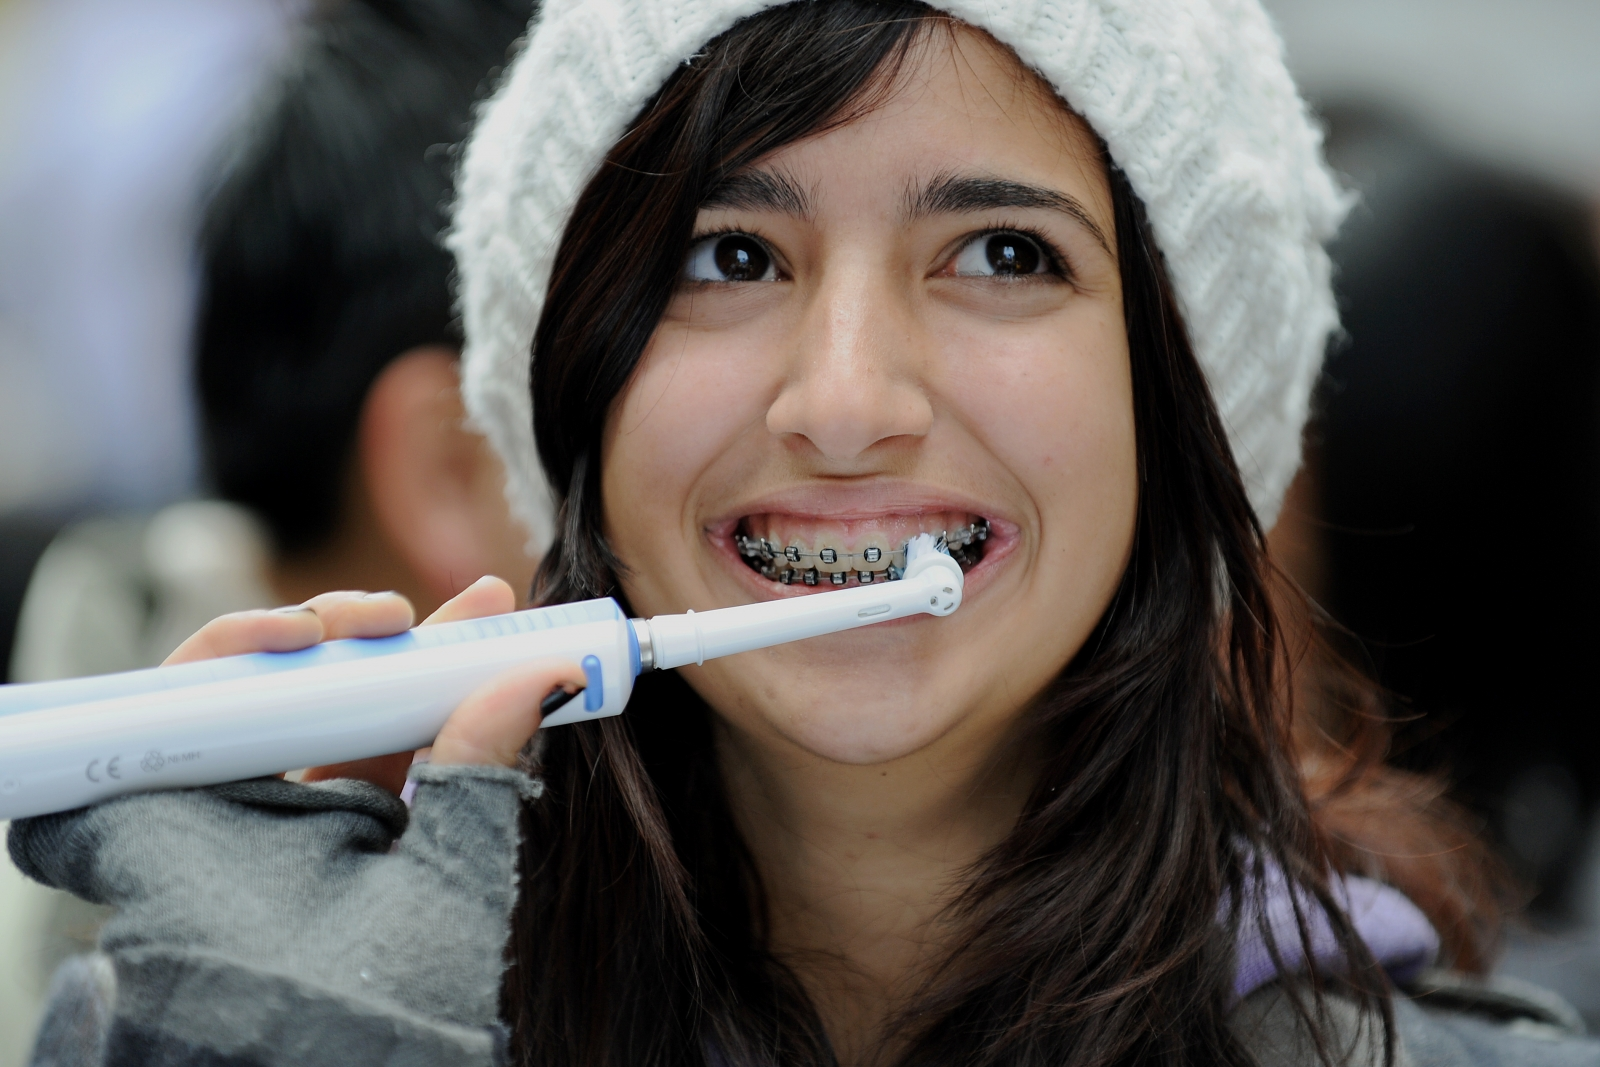 Toothbrush is DNA test